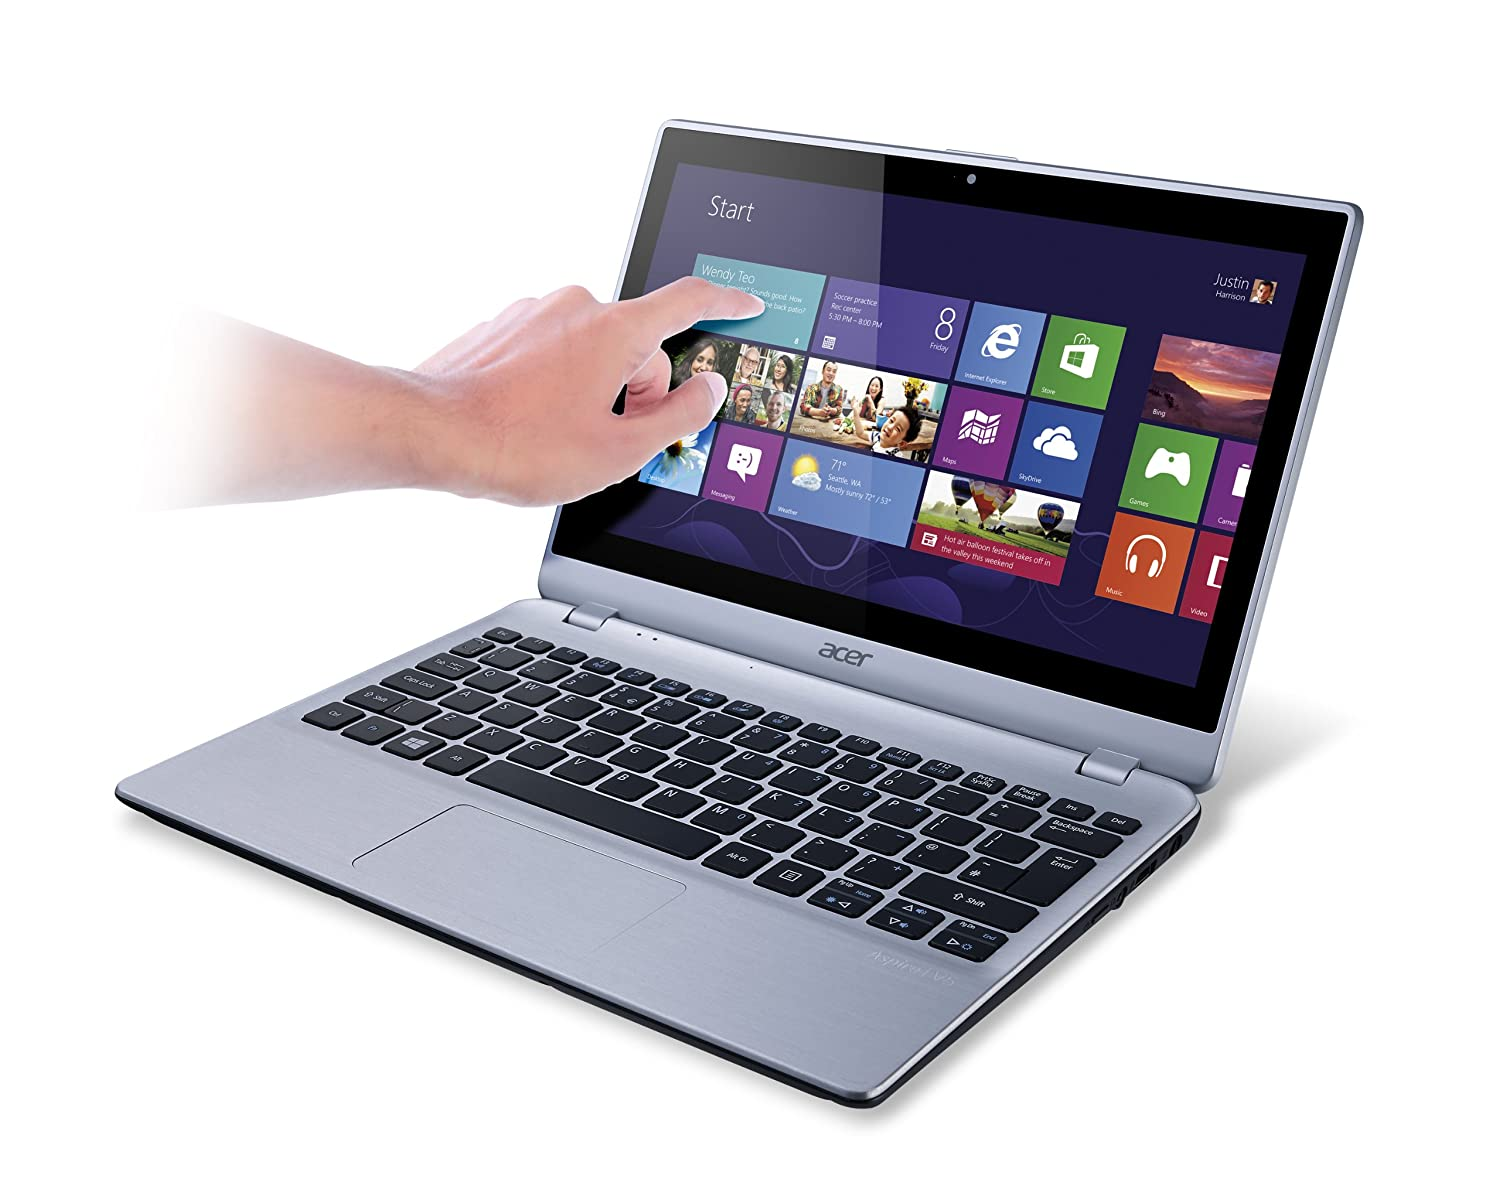 Acer Aspire V5-122P review